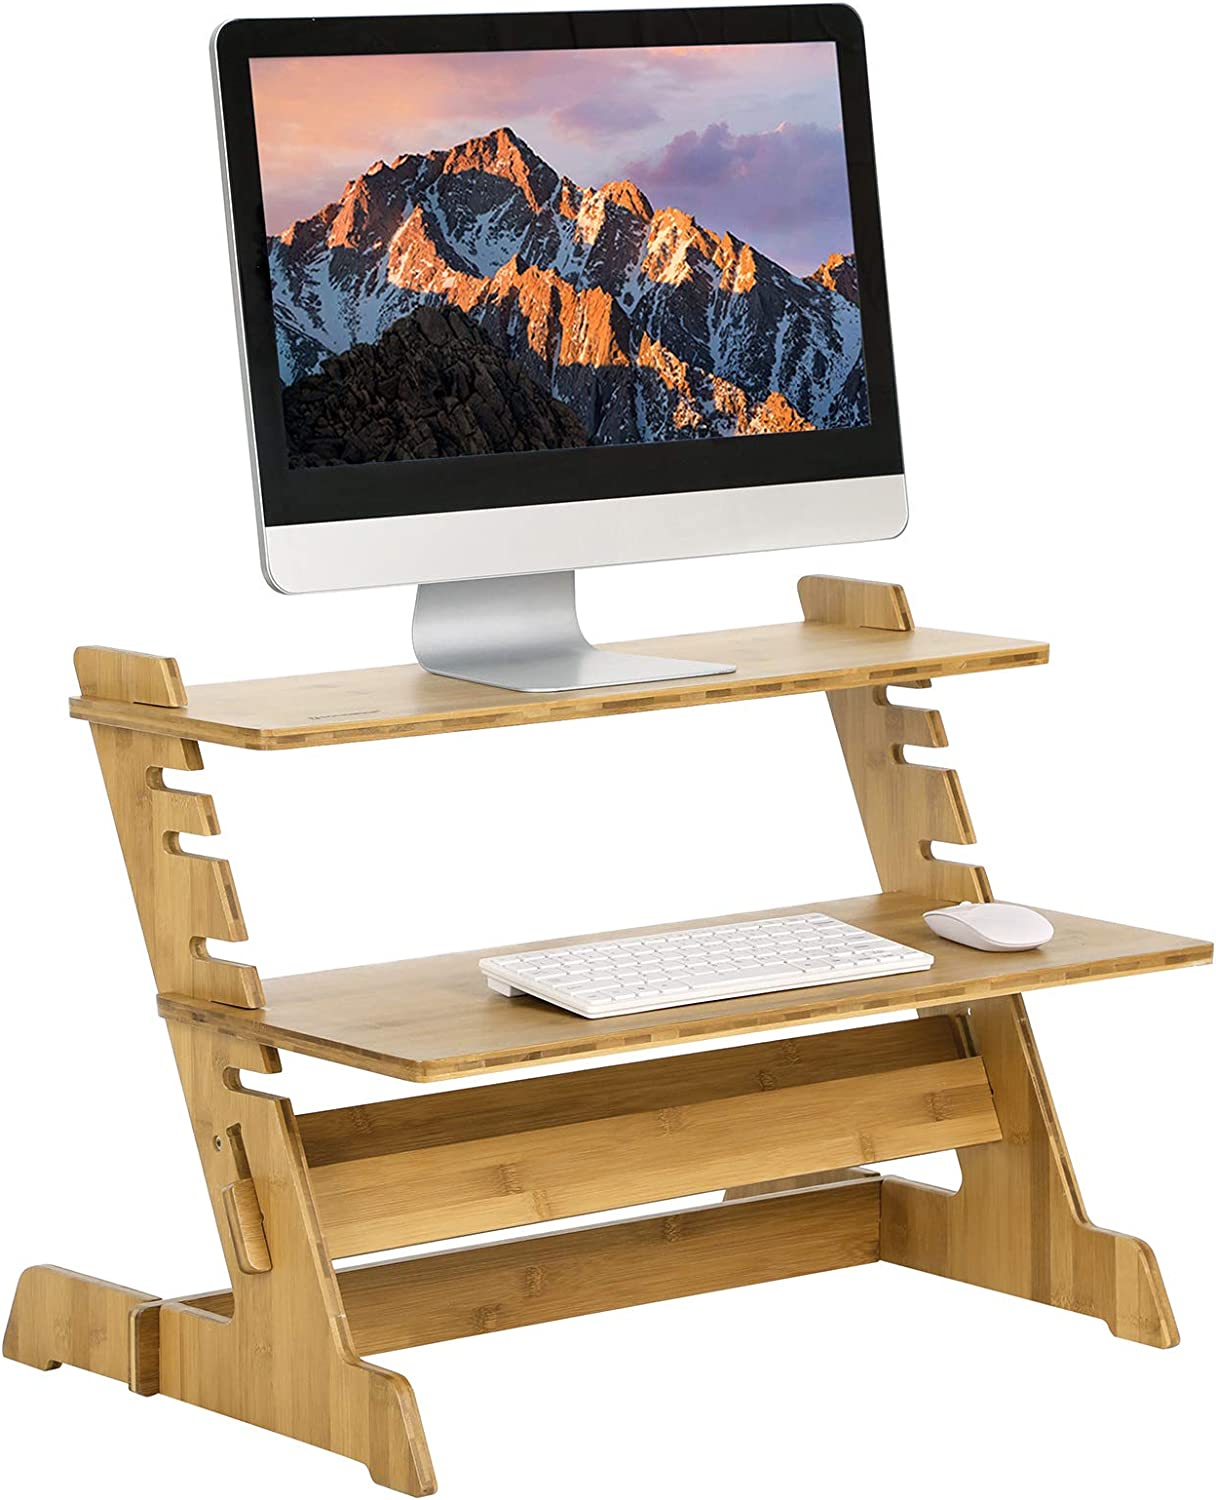 SONGMICS Bamboo Standing Desk, Height adjustable Stand Riser, Sit-stand Workstation Converter, Portable for Monitor, Laptop LLD97N